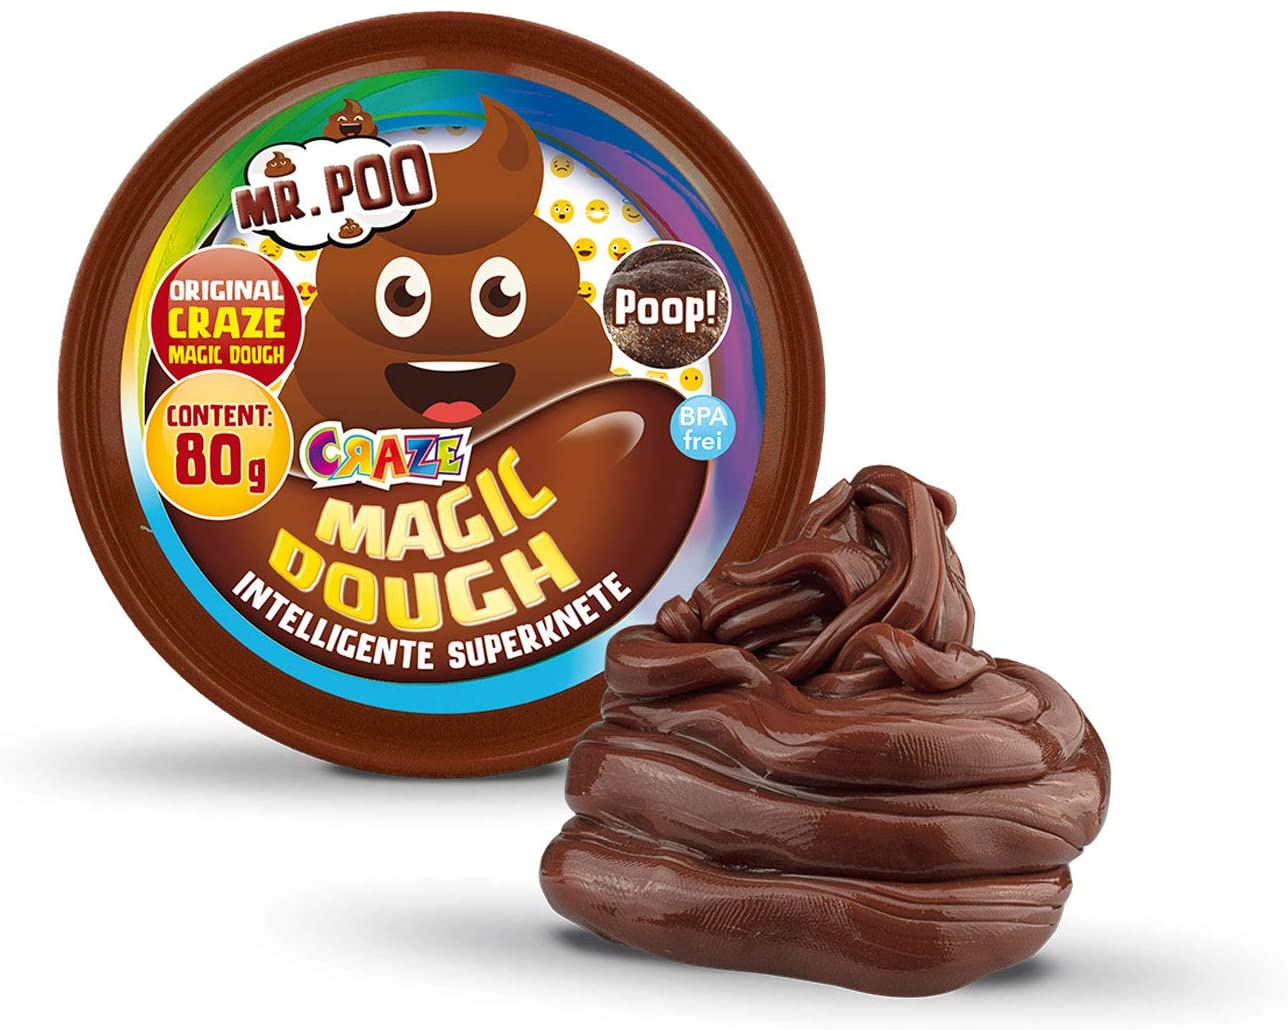 MAGIC DOUGH Intelligente Superknete - Mr. Poo 80g